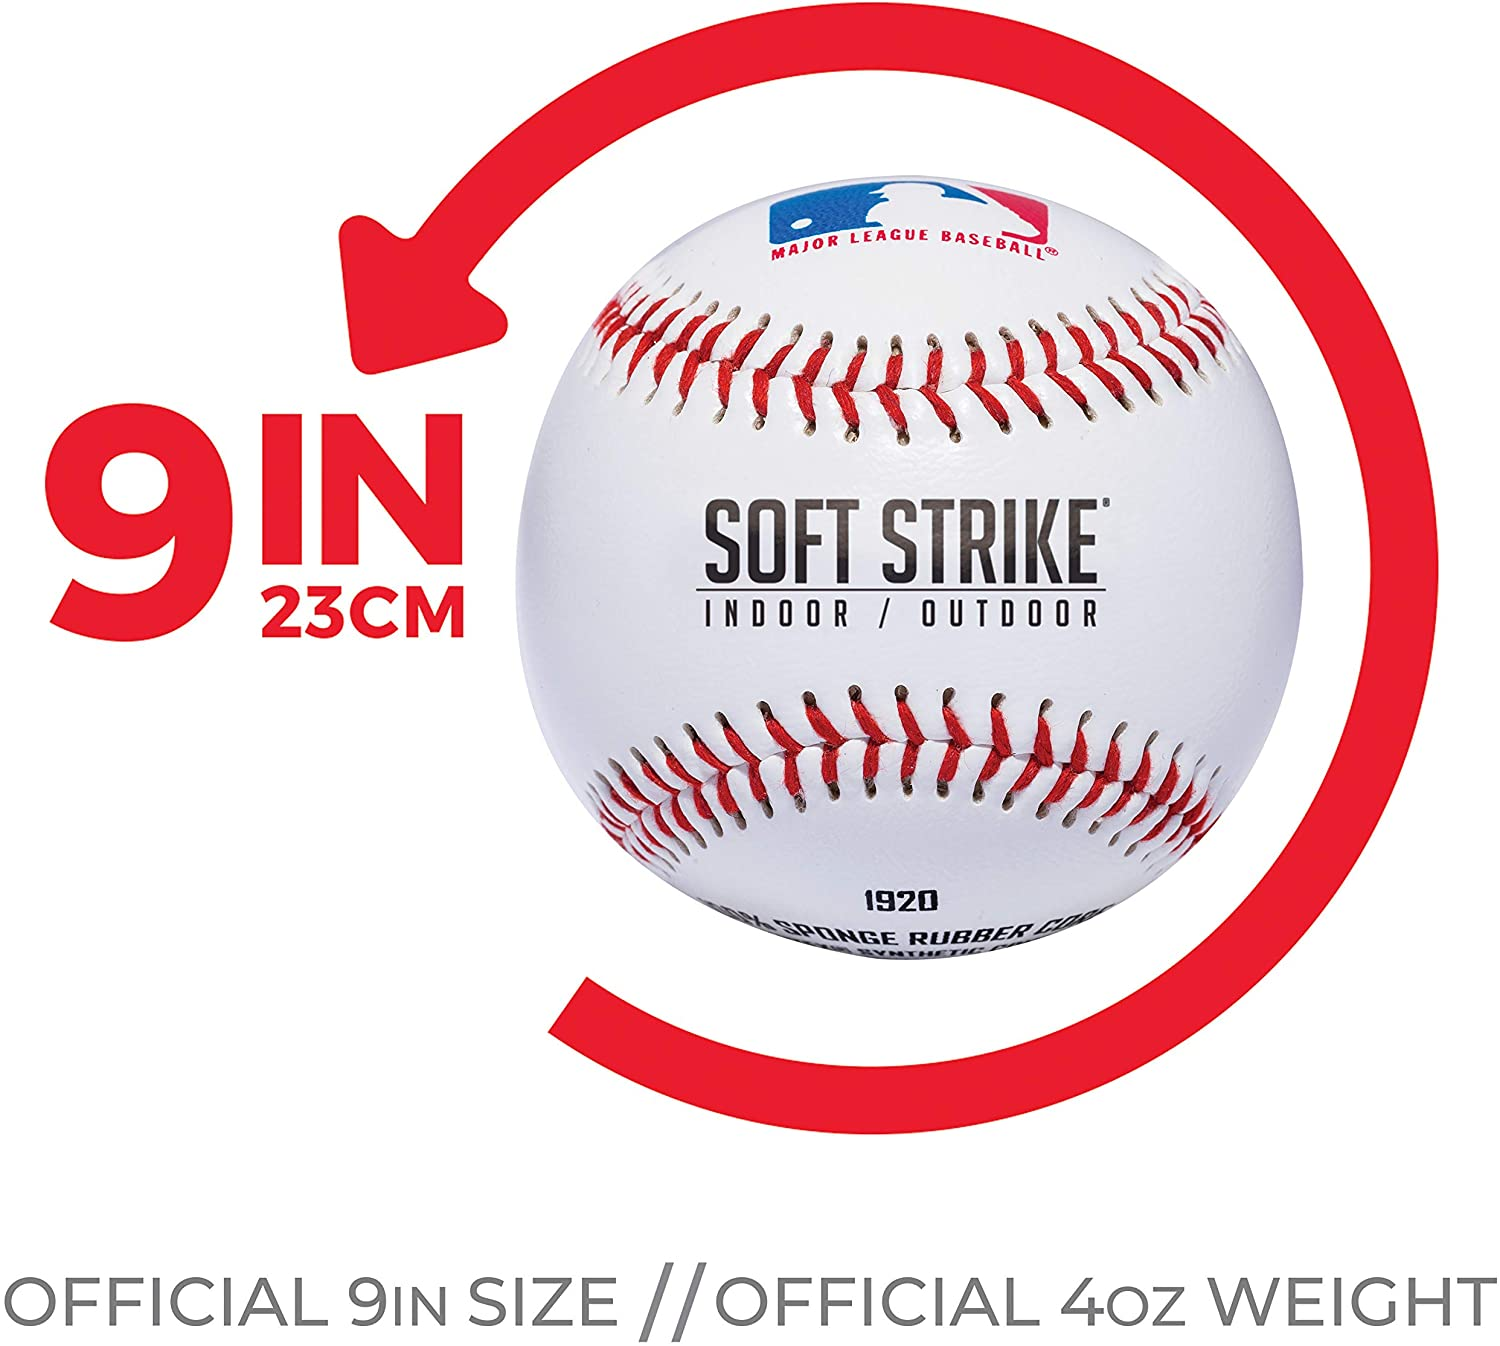 Franklin Sports Soft-Strike Teeball - Official Size and Weight Approved For Teeball - Hollow Rubber Core Technology For Safety - MLB Teeball Ball For Indoor/Outdoor Use - Pack of 6 : Sports & Outdoors